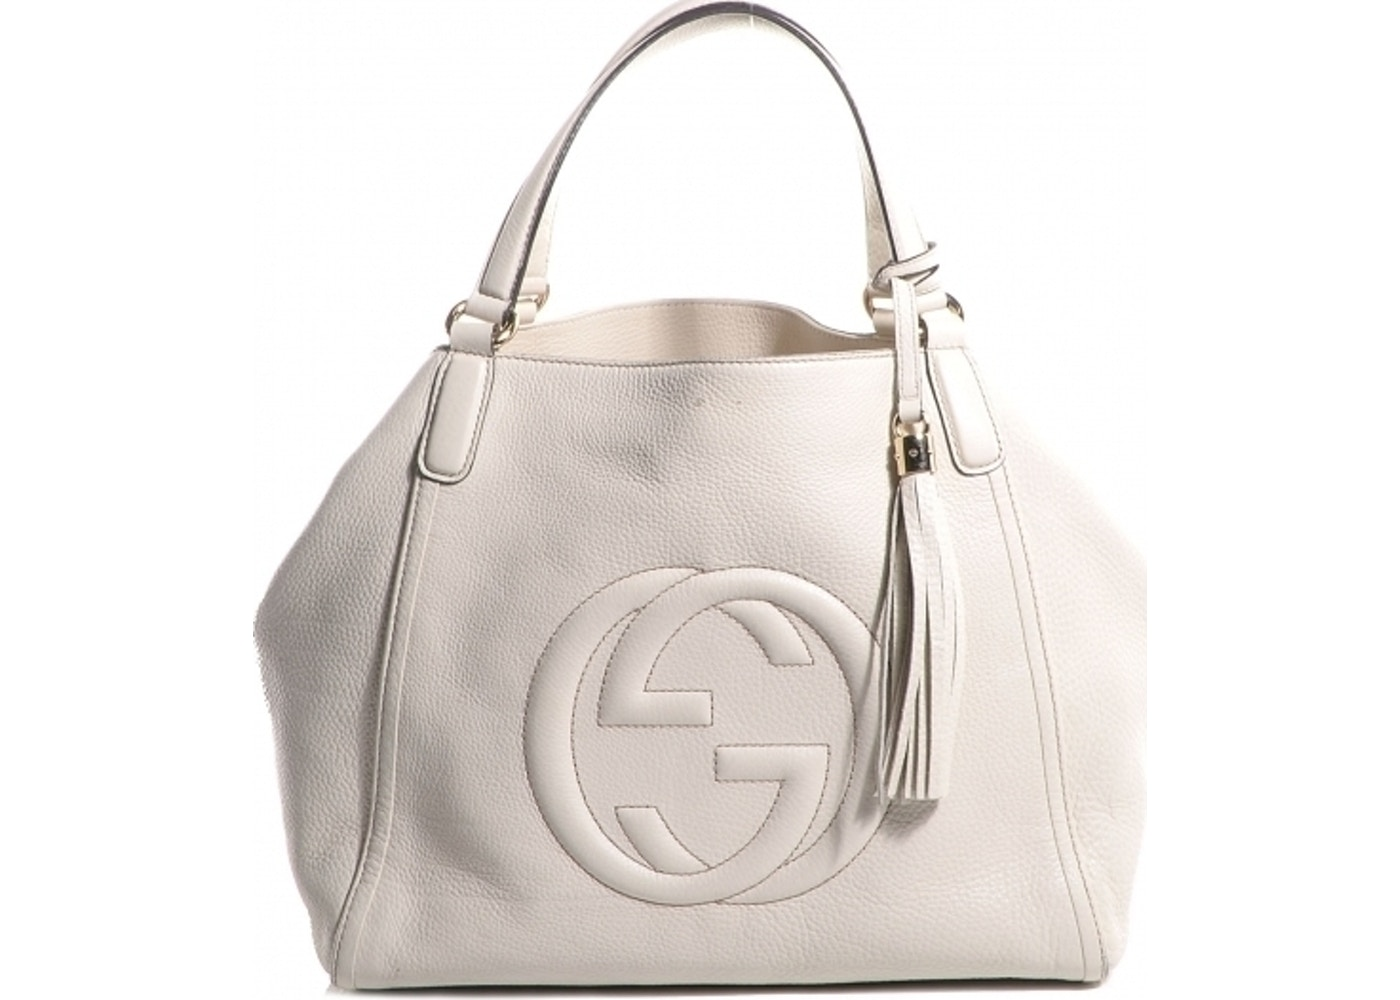 e35c22d971 Gucci Soho Tote Medium Off White. Medium Off White